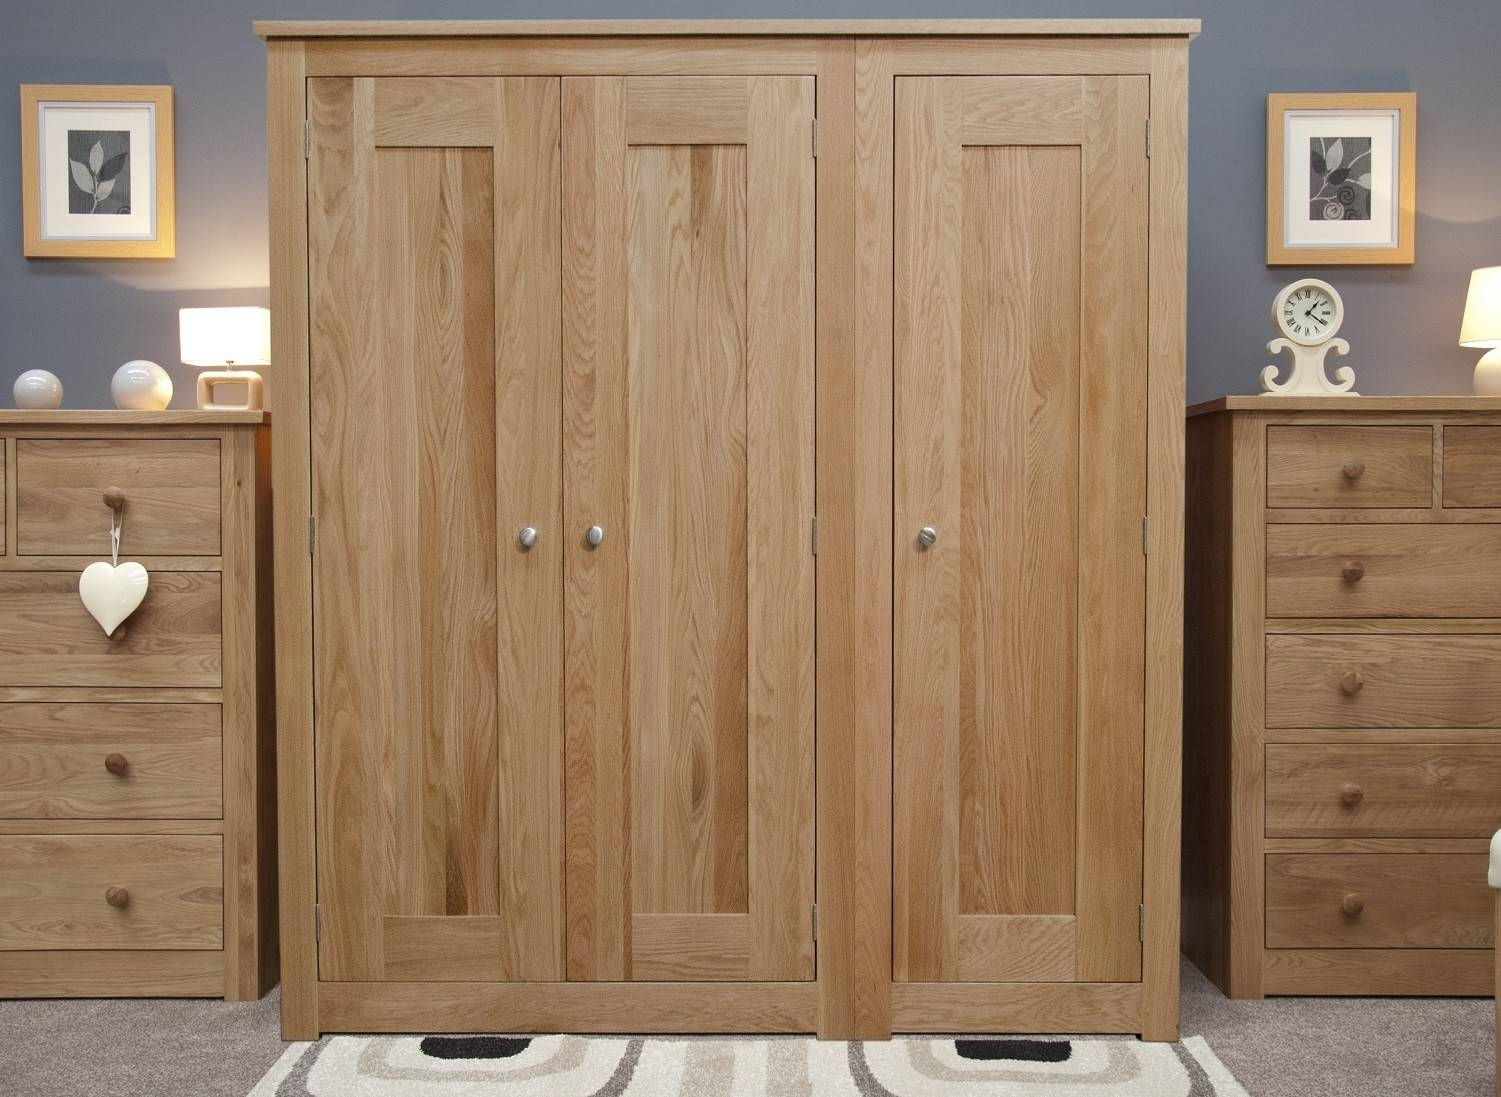 Oak Wardrobes | Oak Furniture Uk throughout Cheap Solid Wood Wardrobes (Image 6 of 15)